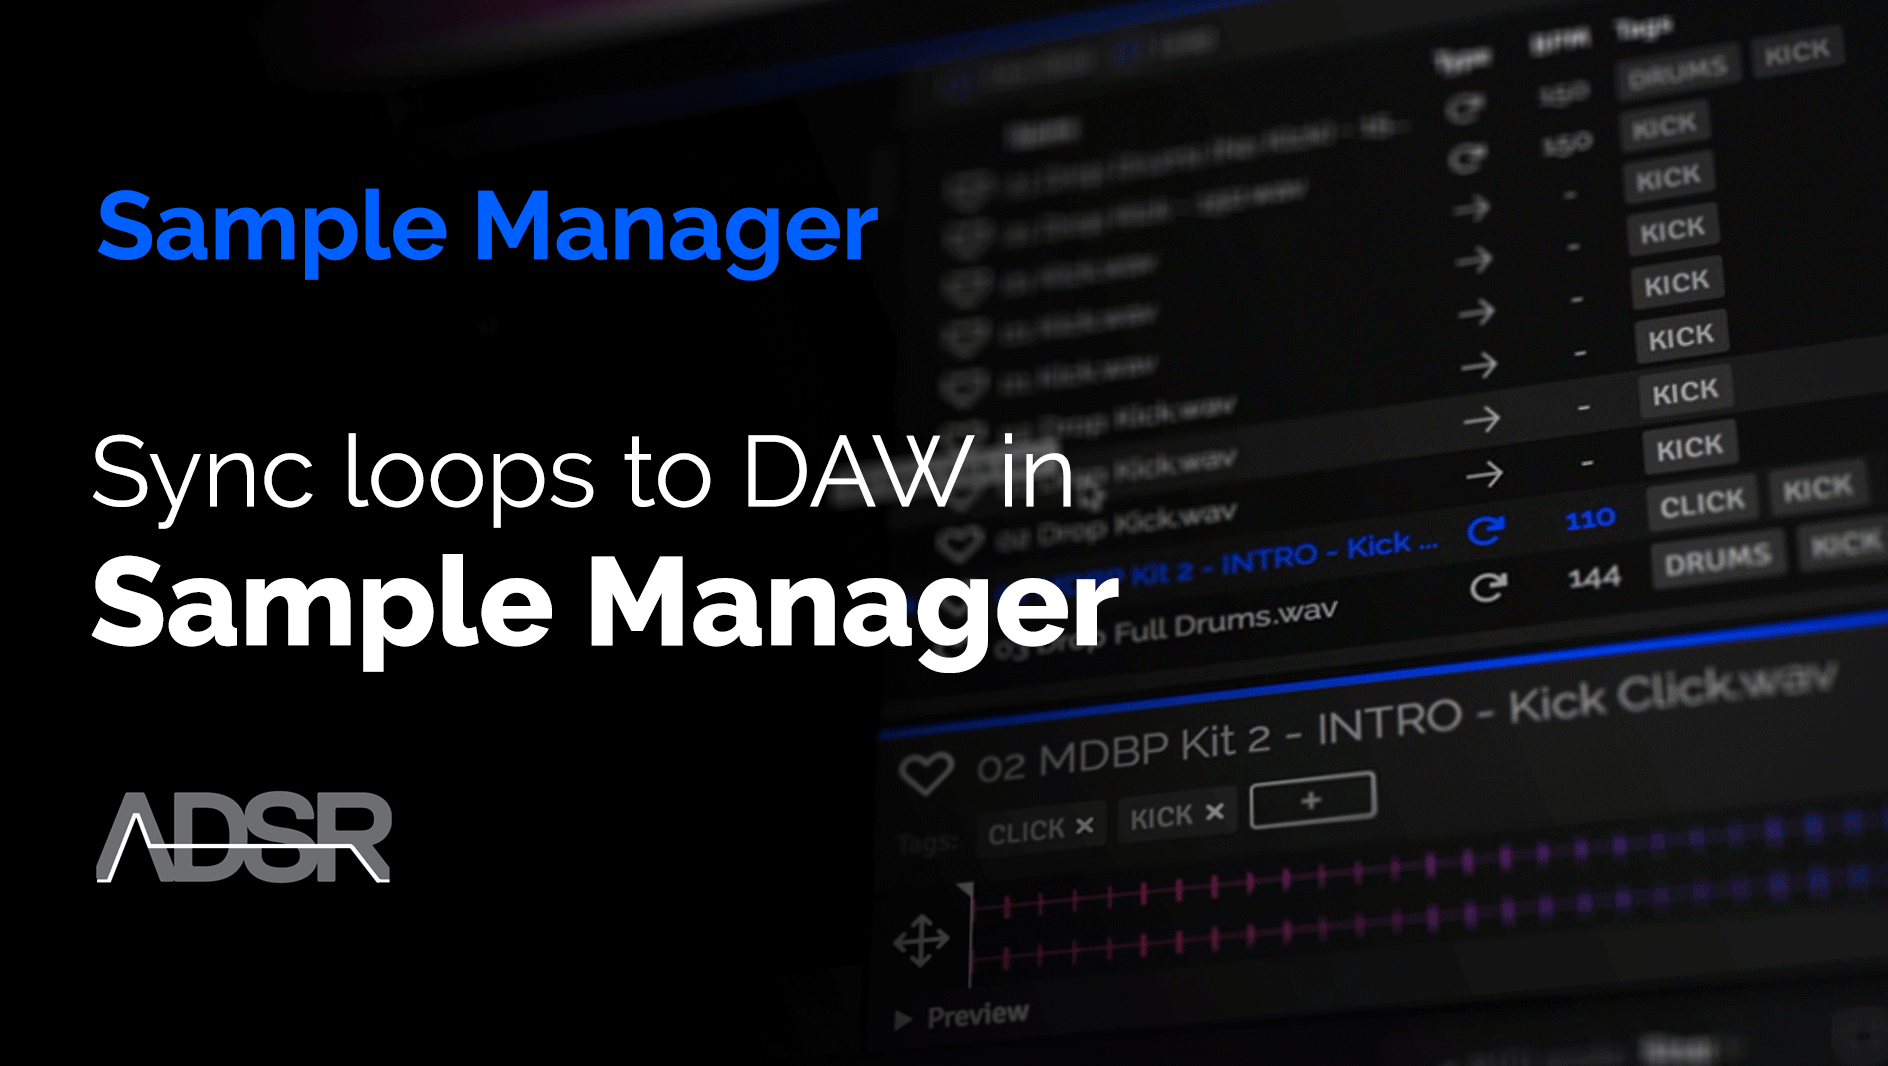 Sync loops to DAW tempo in ADSR Sample Manager